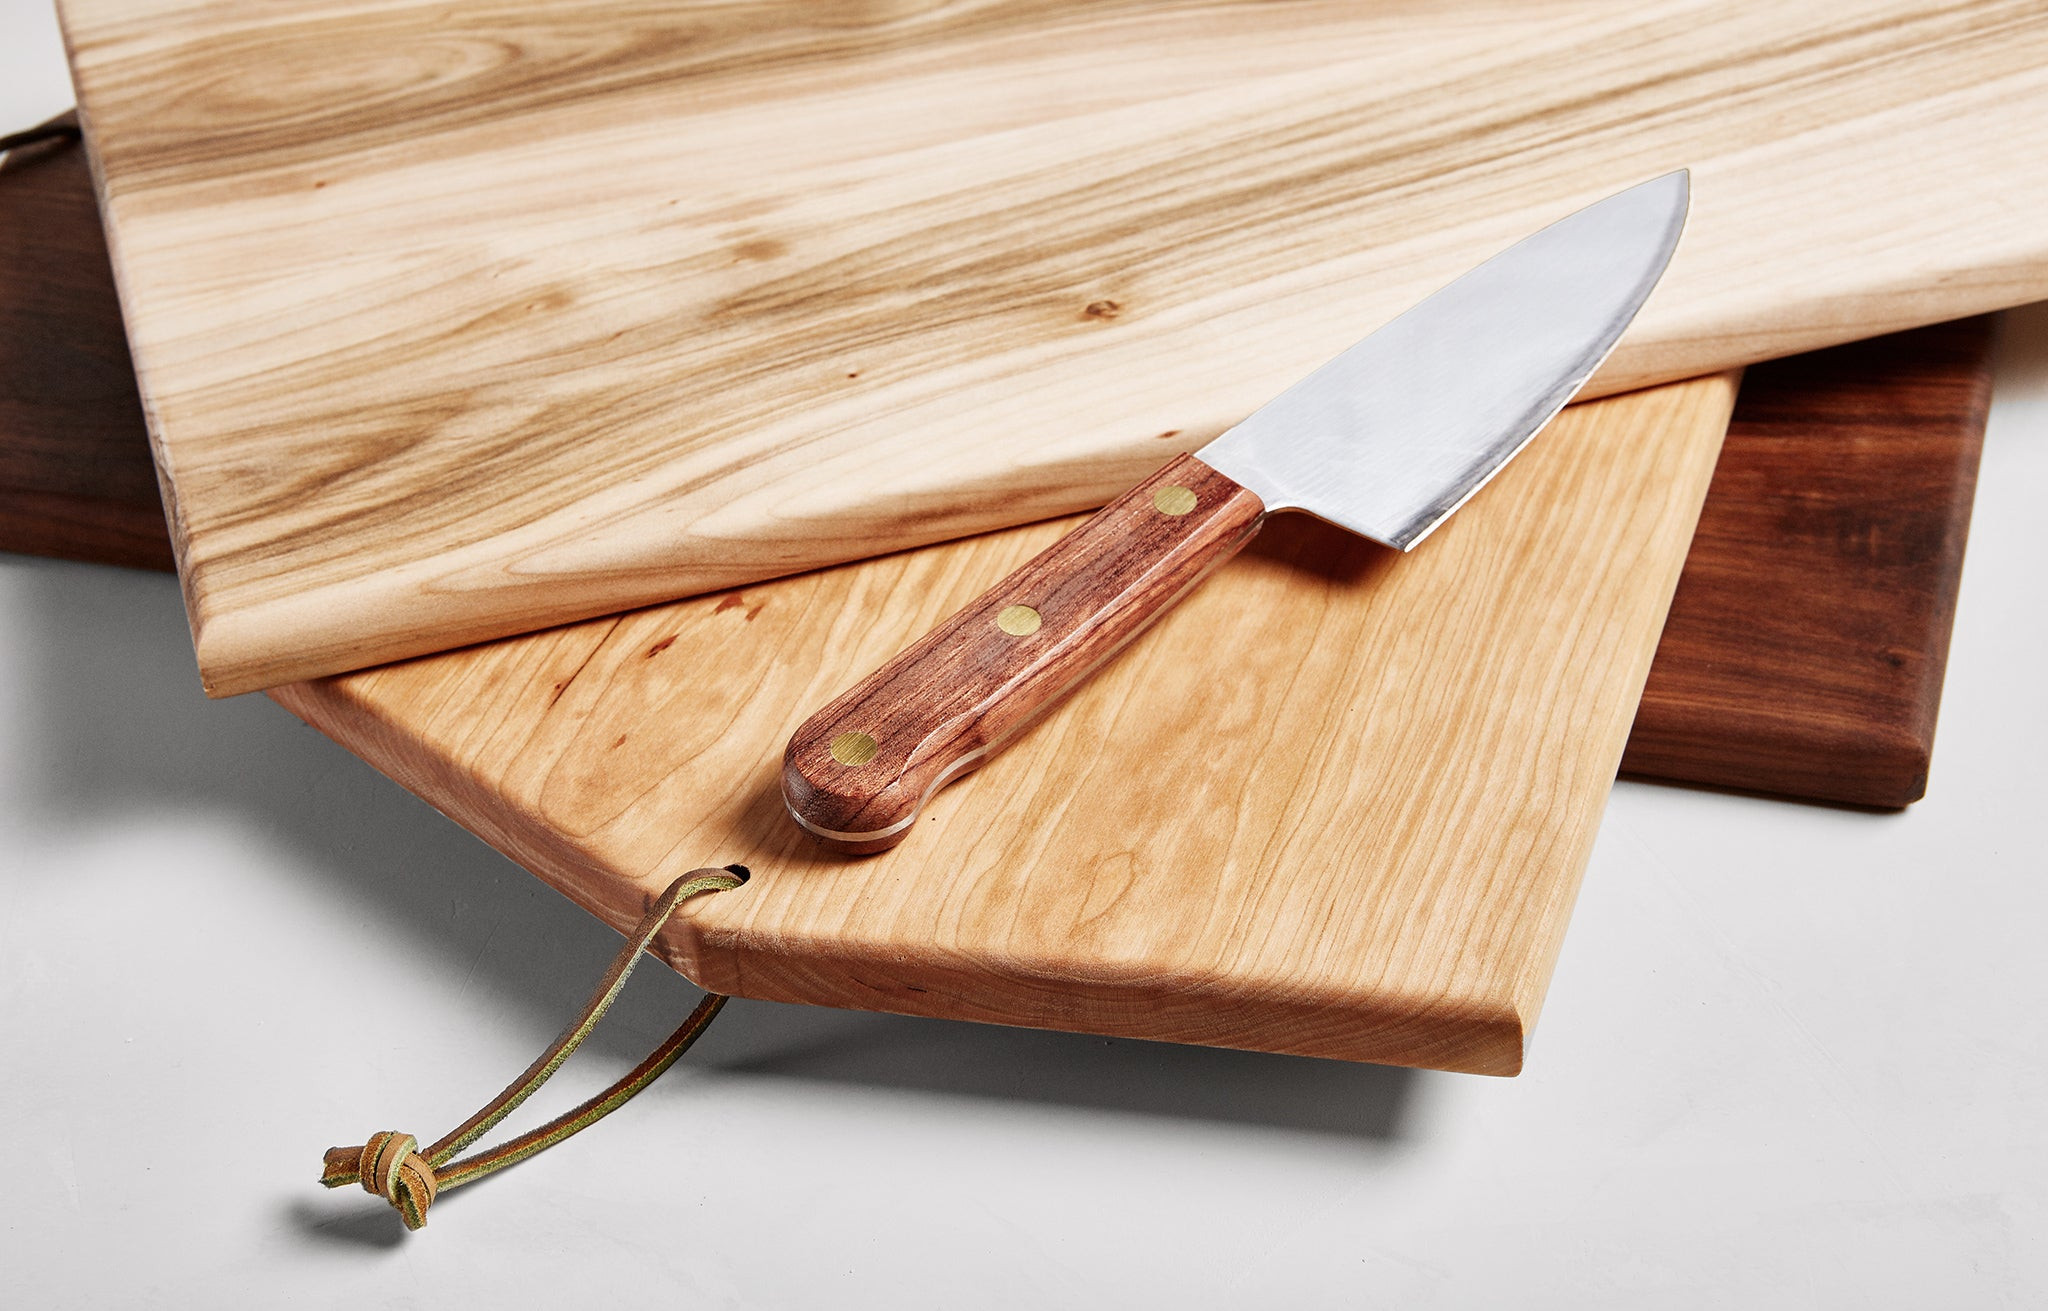 6 Inch Chef's Knife | lifestyle